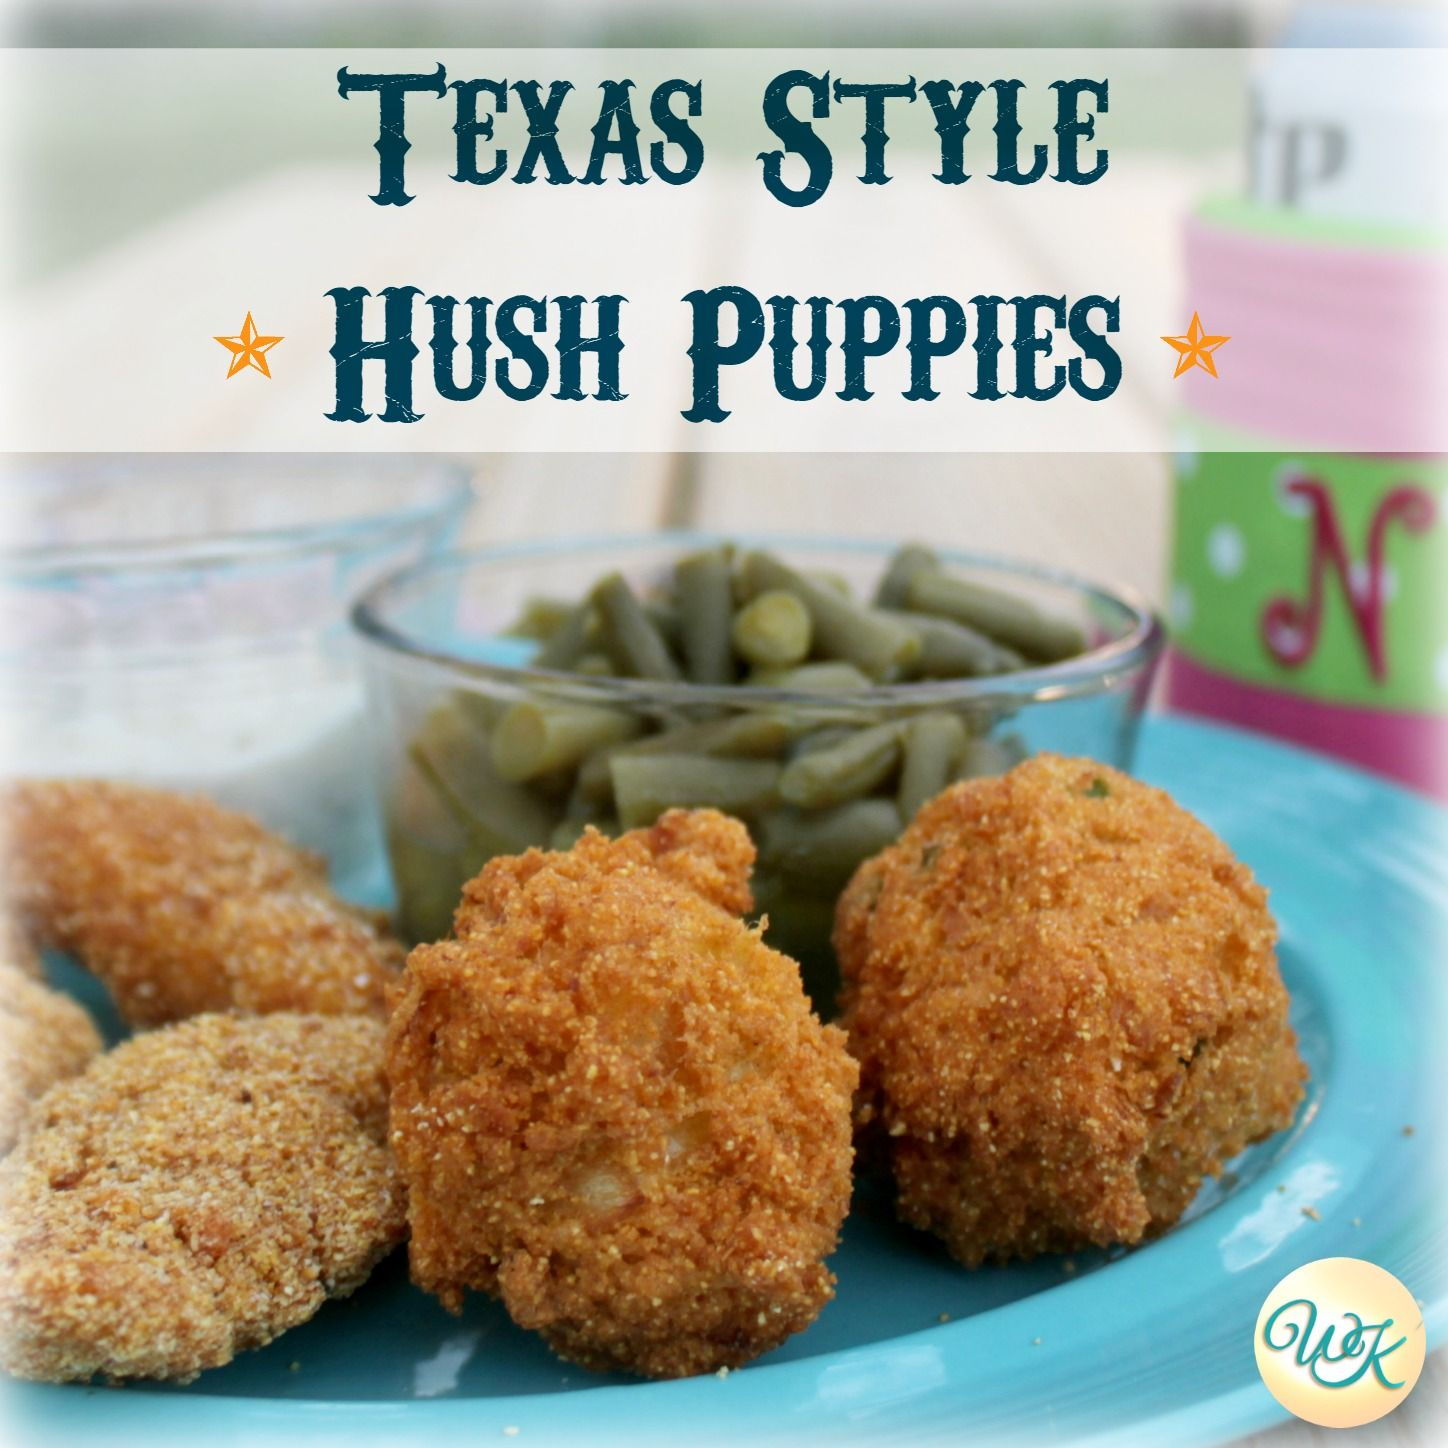 Texas Style Hush Puppies Food Cooking Recipes Seafood Dishes